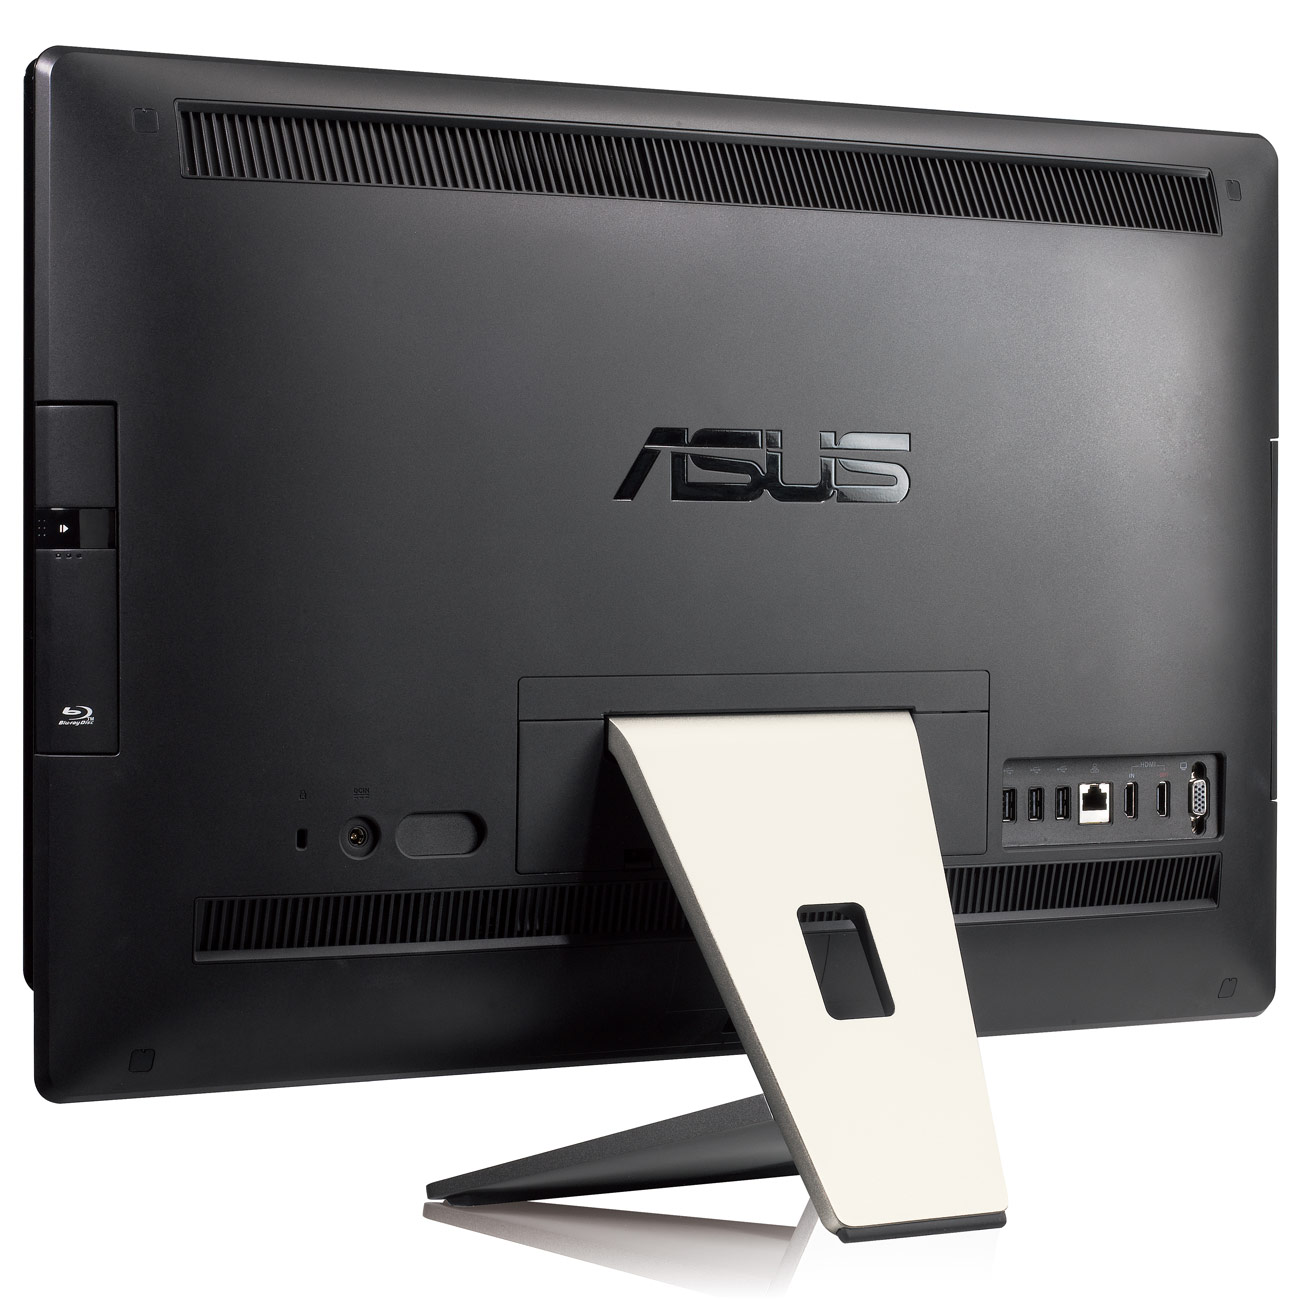 asus eeetop pc et2411inti b039c pc de bureau asus sur. Black Bedroom Furniture Sets. Home Design Ideas